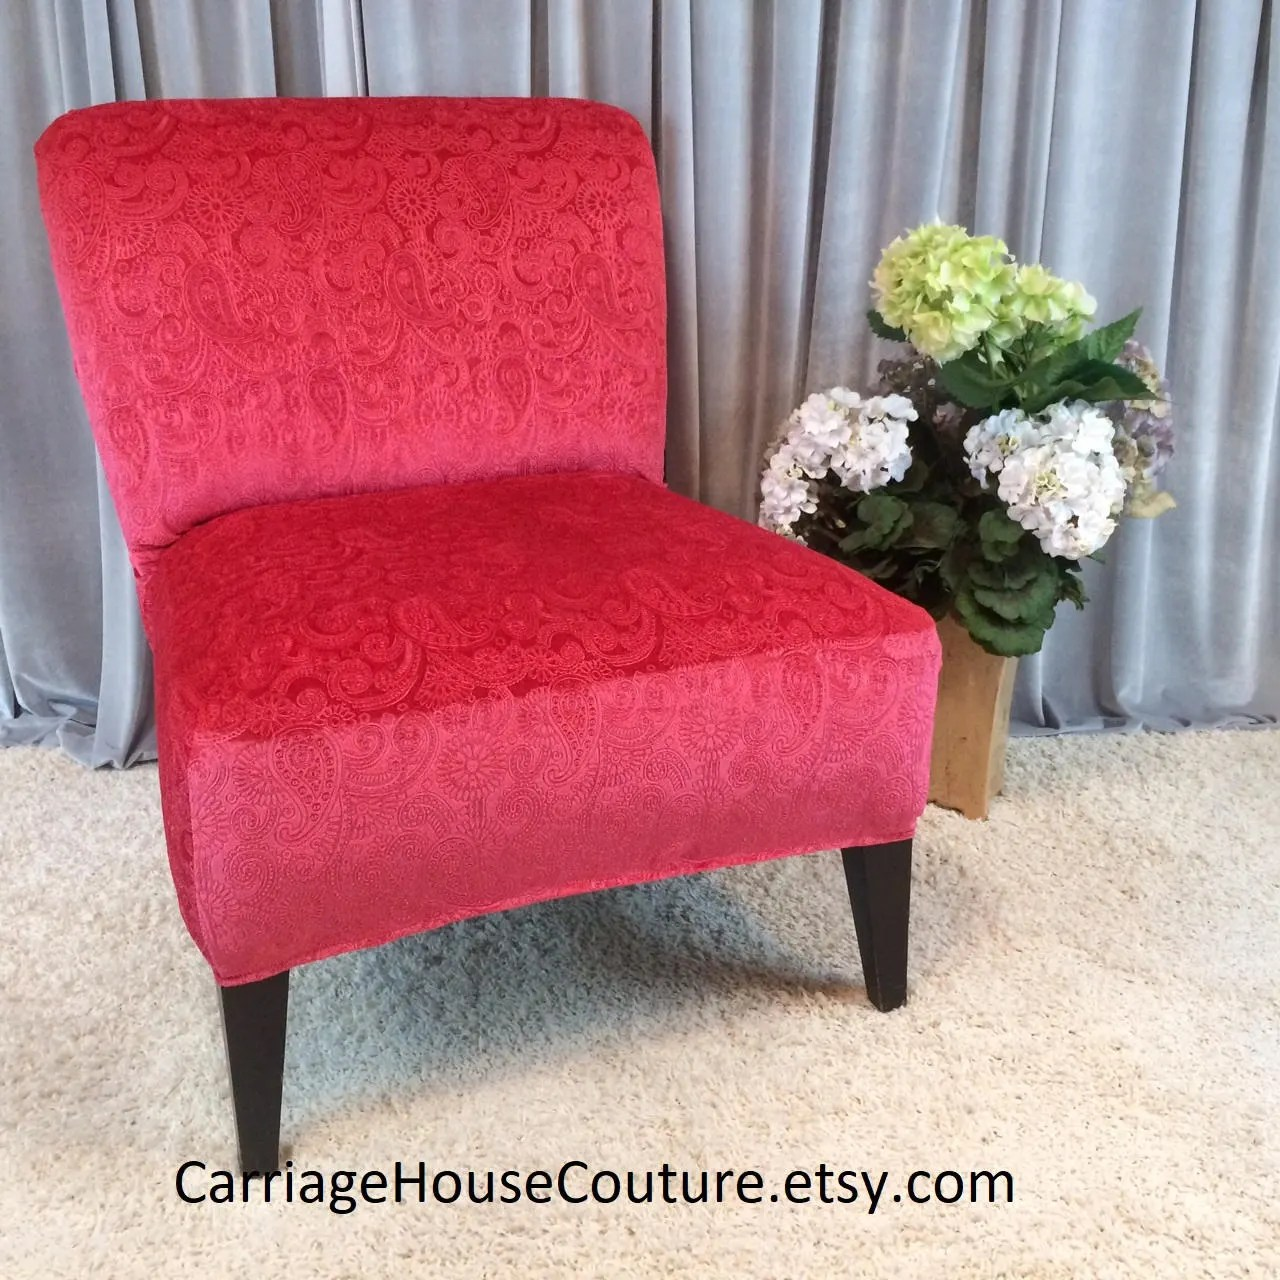 pink slipcover chair black plastic with wooden legs living coral embossed velvet cover for etsy image 0